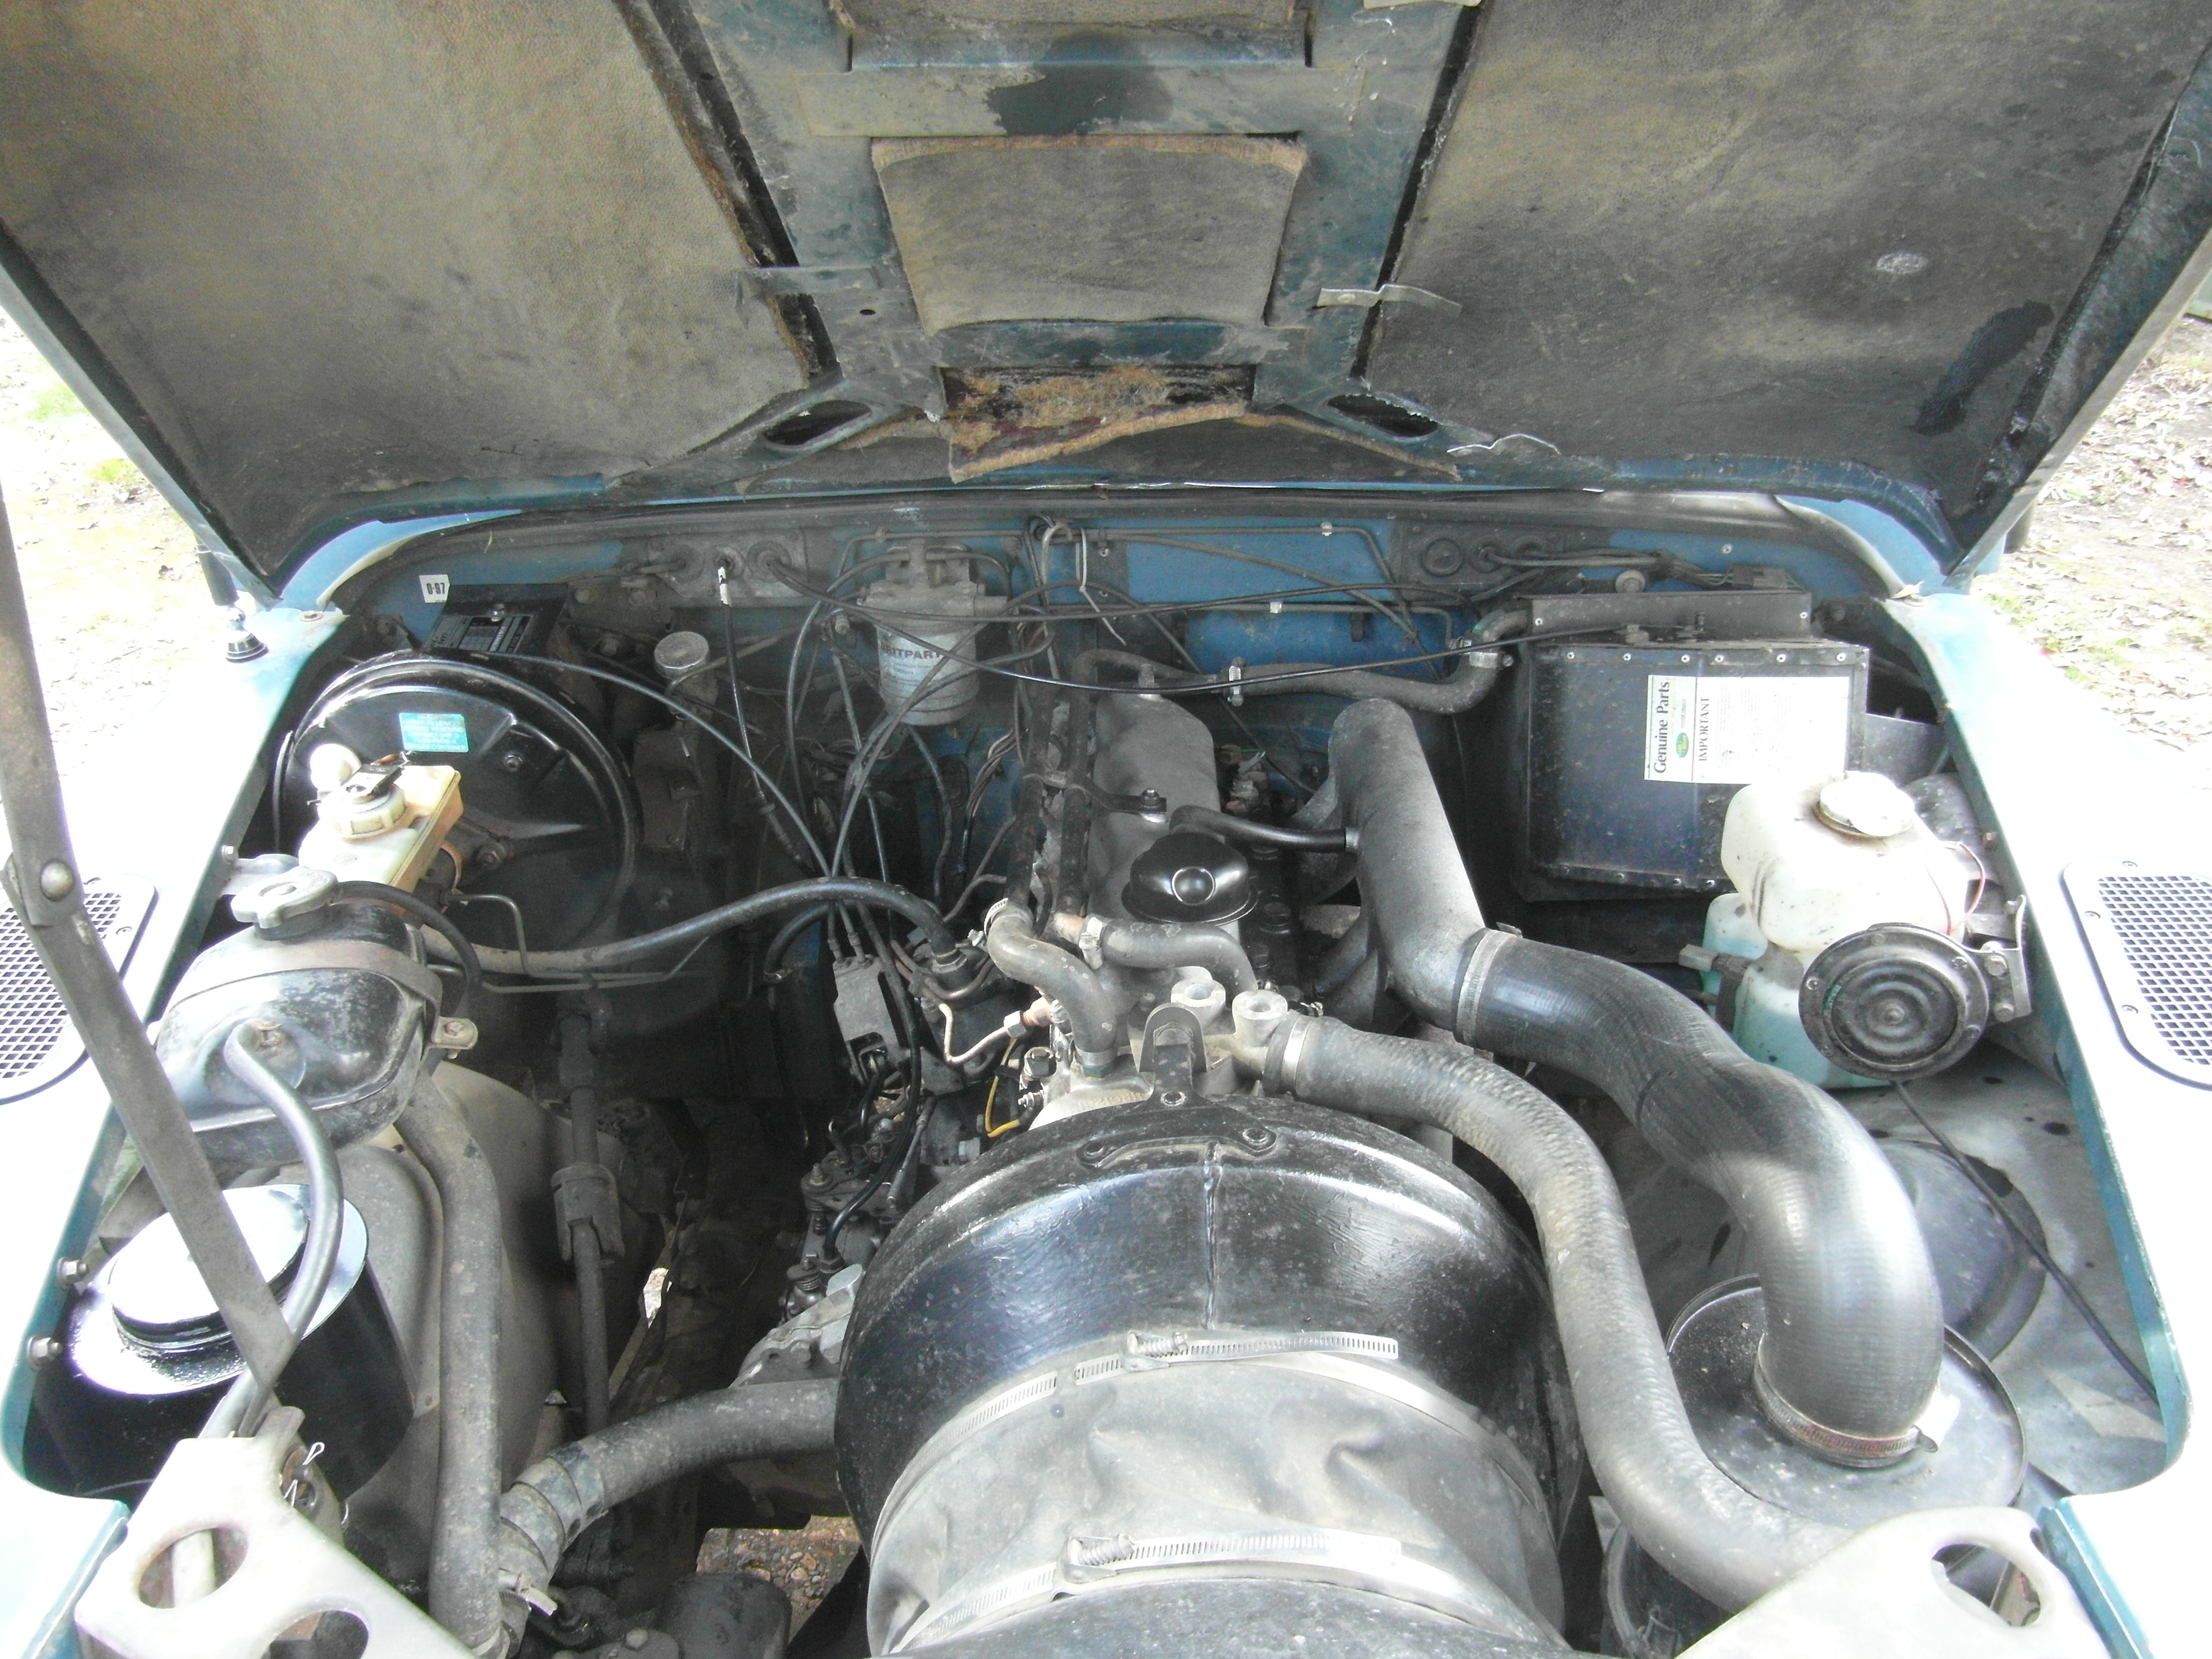 diesel engine starter diagram whirlpool dryer heating element wiring tuning a land rover 2 5na automotive adrenaline despite the reliability of 12j having driven 1986 ninety for few years now i was fairly keen to progress later 200tdi which has far